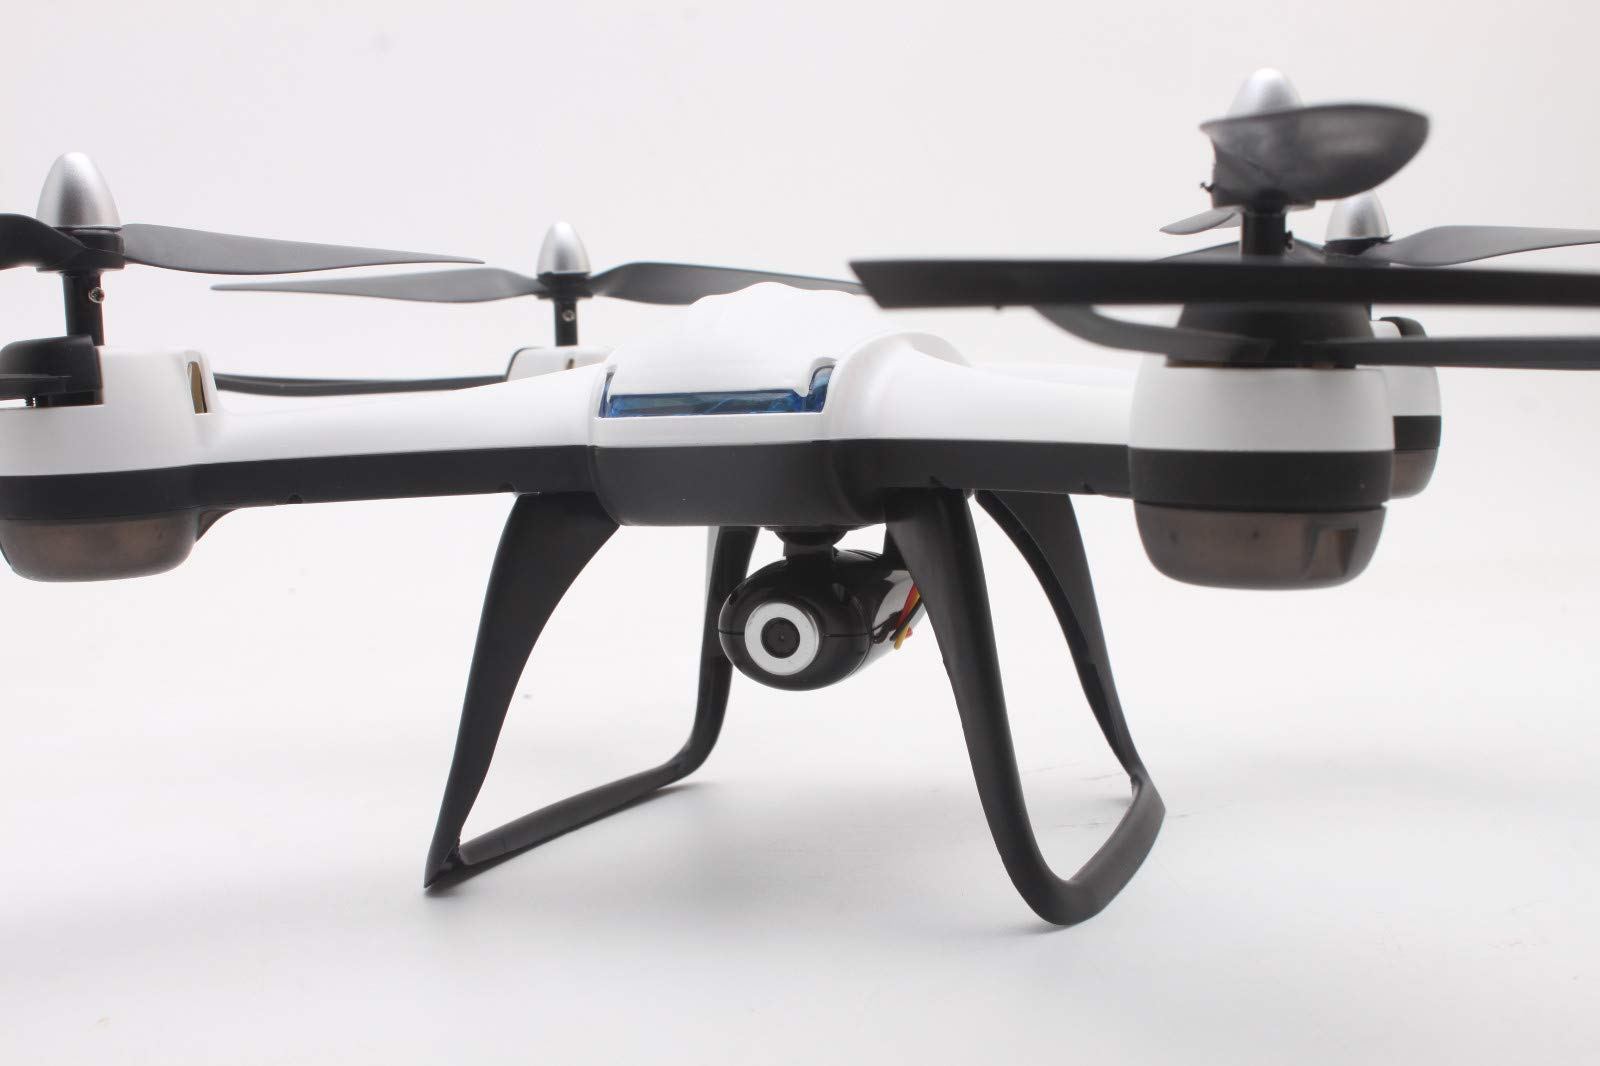 quietJUNjun toy RC Helicopter,DM009 2.4GHz 6-Axis Gyro 5MP Drone (White) by quietJUNjun toy (Image #2)